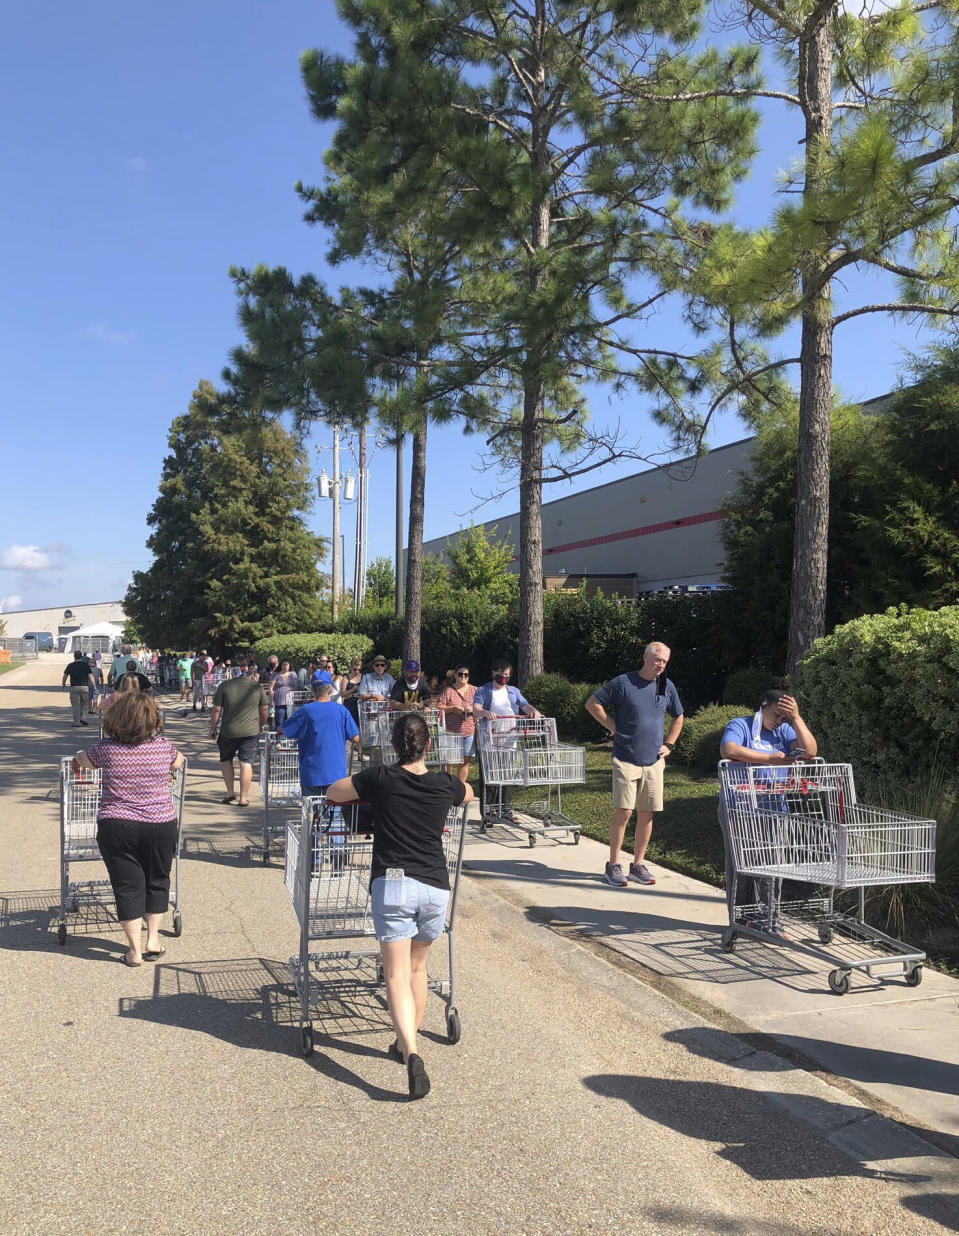 In a photo provided by John Snow, people line up to enter a Costco store Sunday, Aug. 23, 2020, in Baton Rouge, La., as Hurricane Marco was moving toward Louisiana. (John Snow via AP)